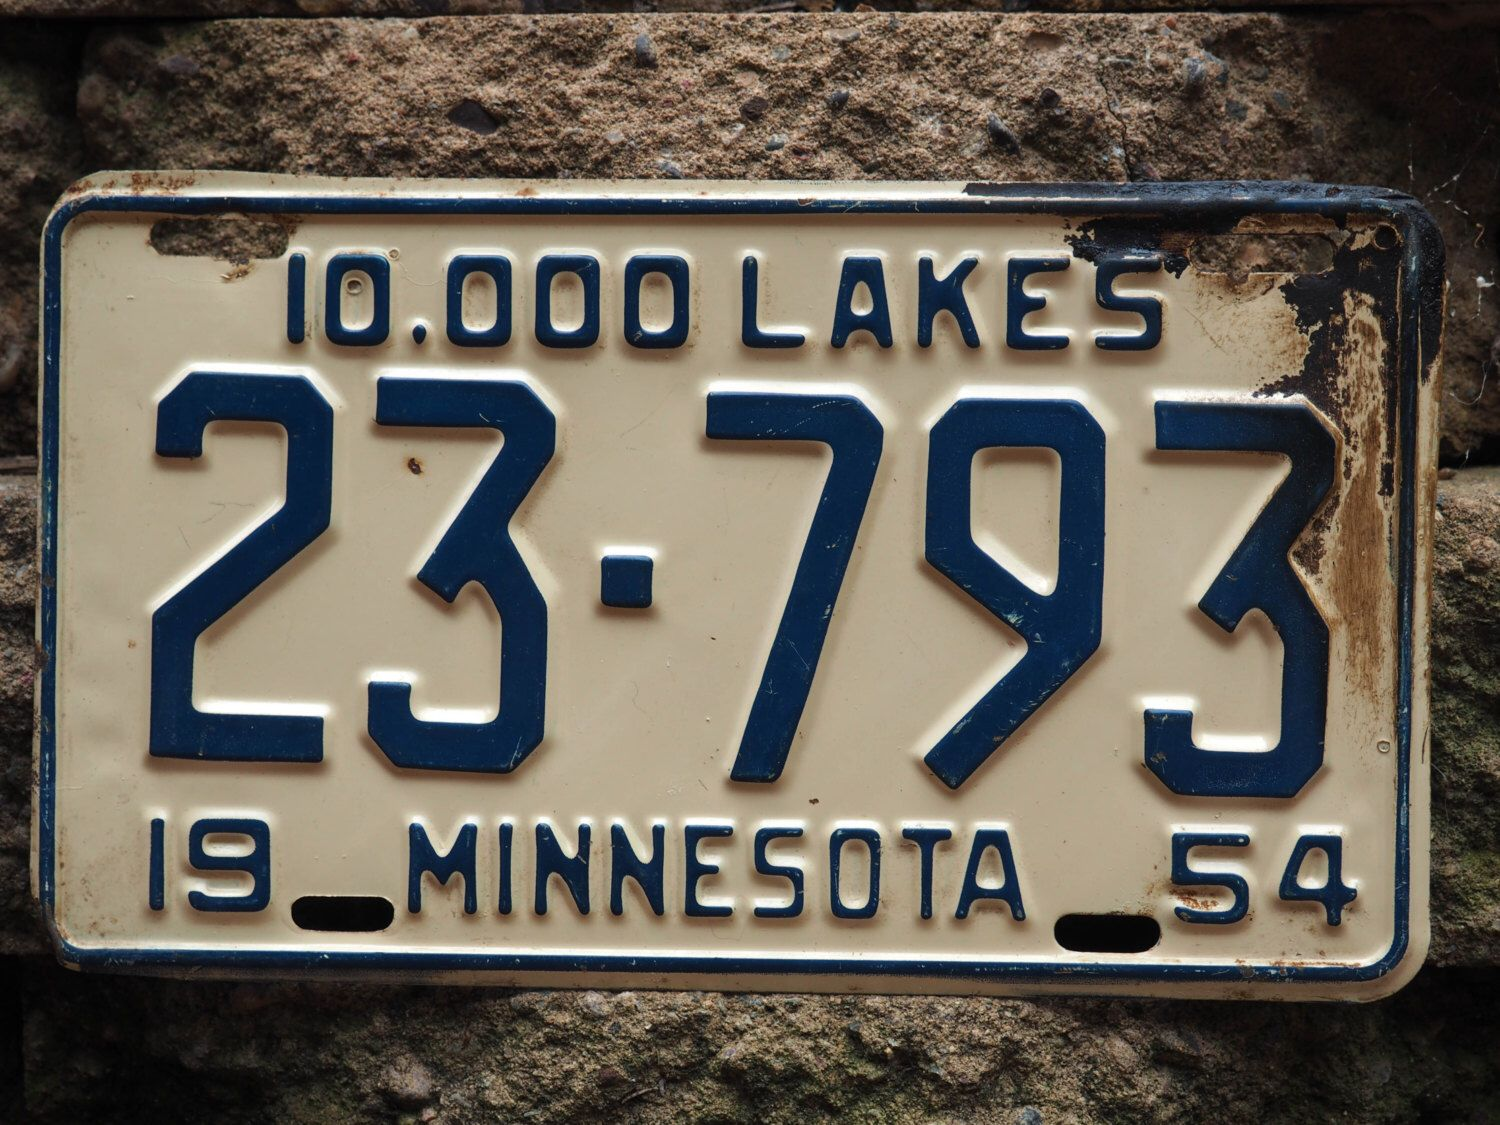 Antique License Plate - Land of 10,000 Lakes - Minnesota - 1954